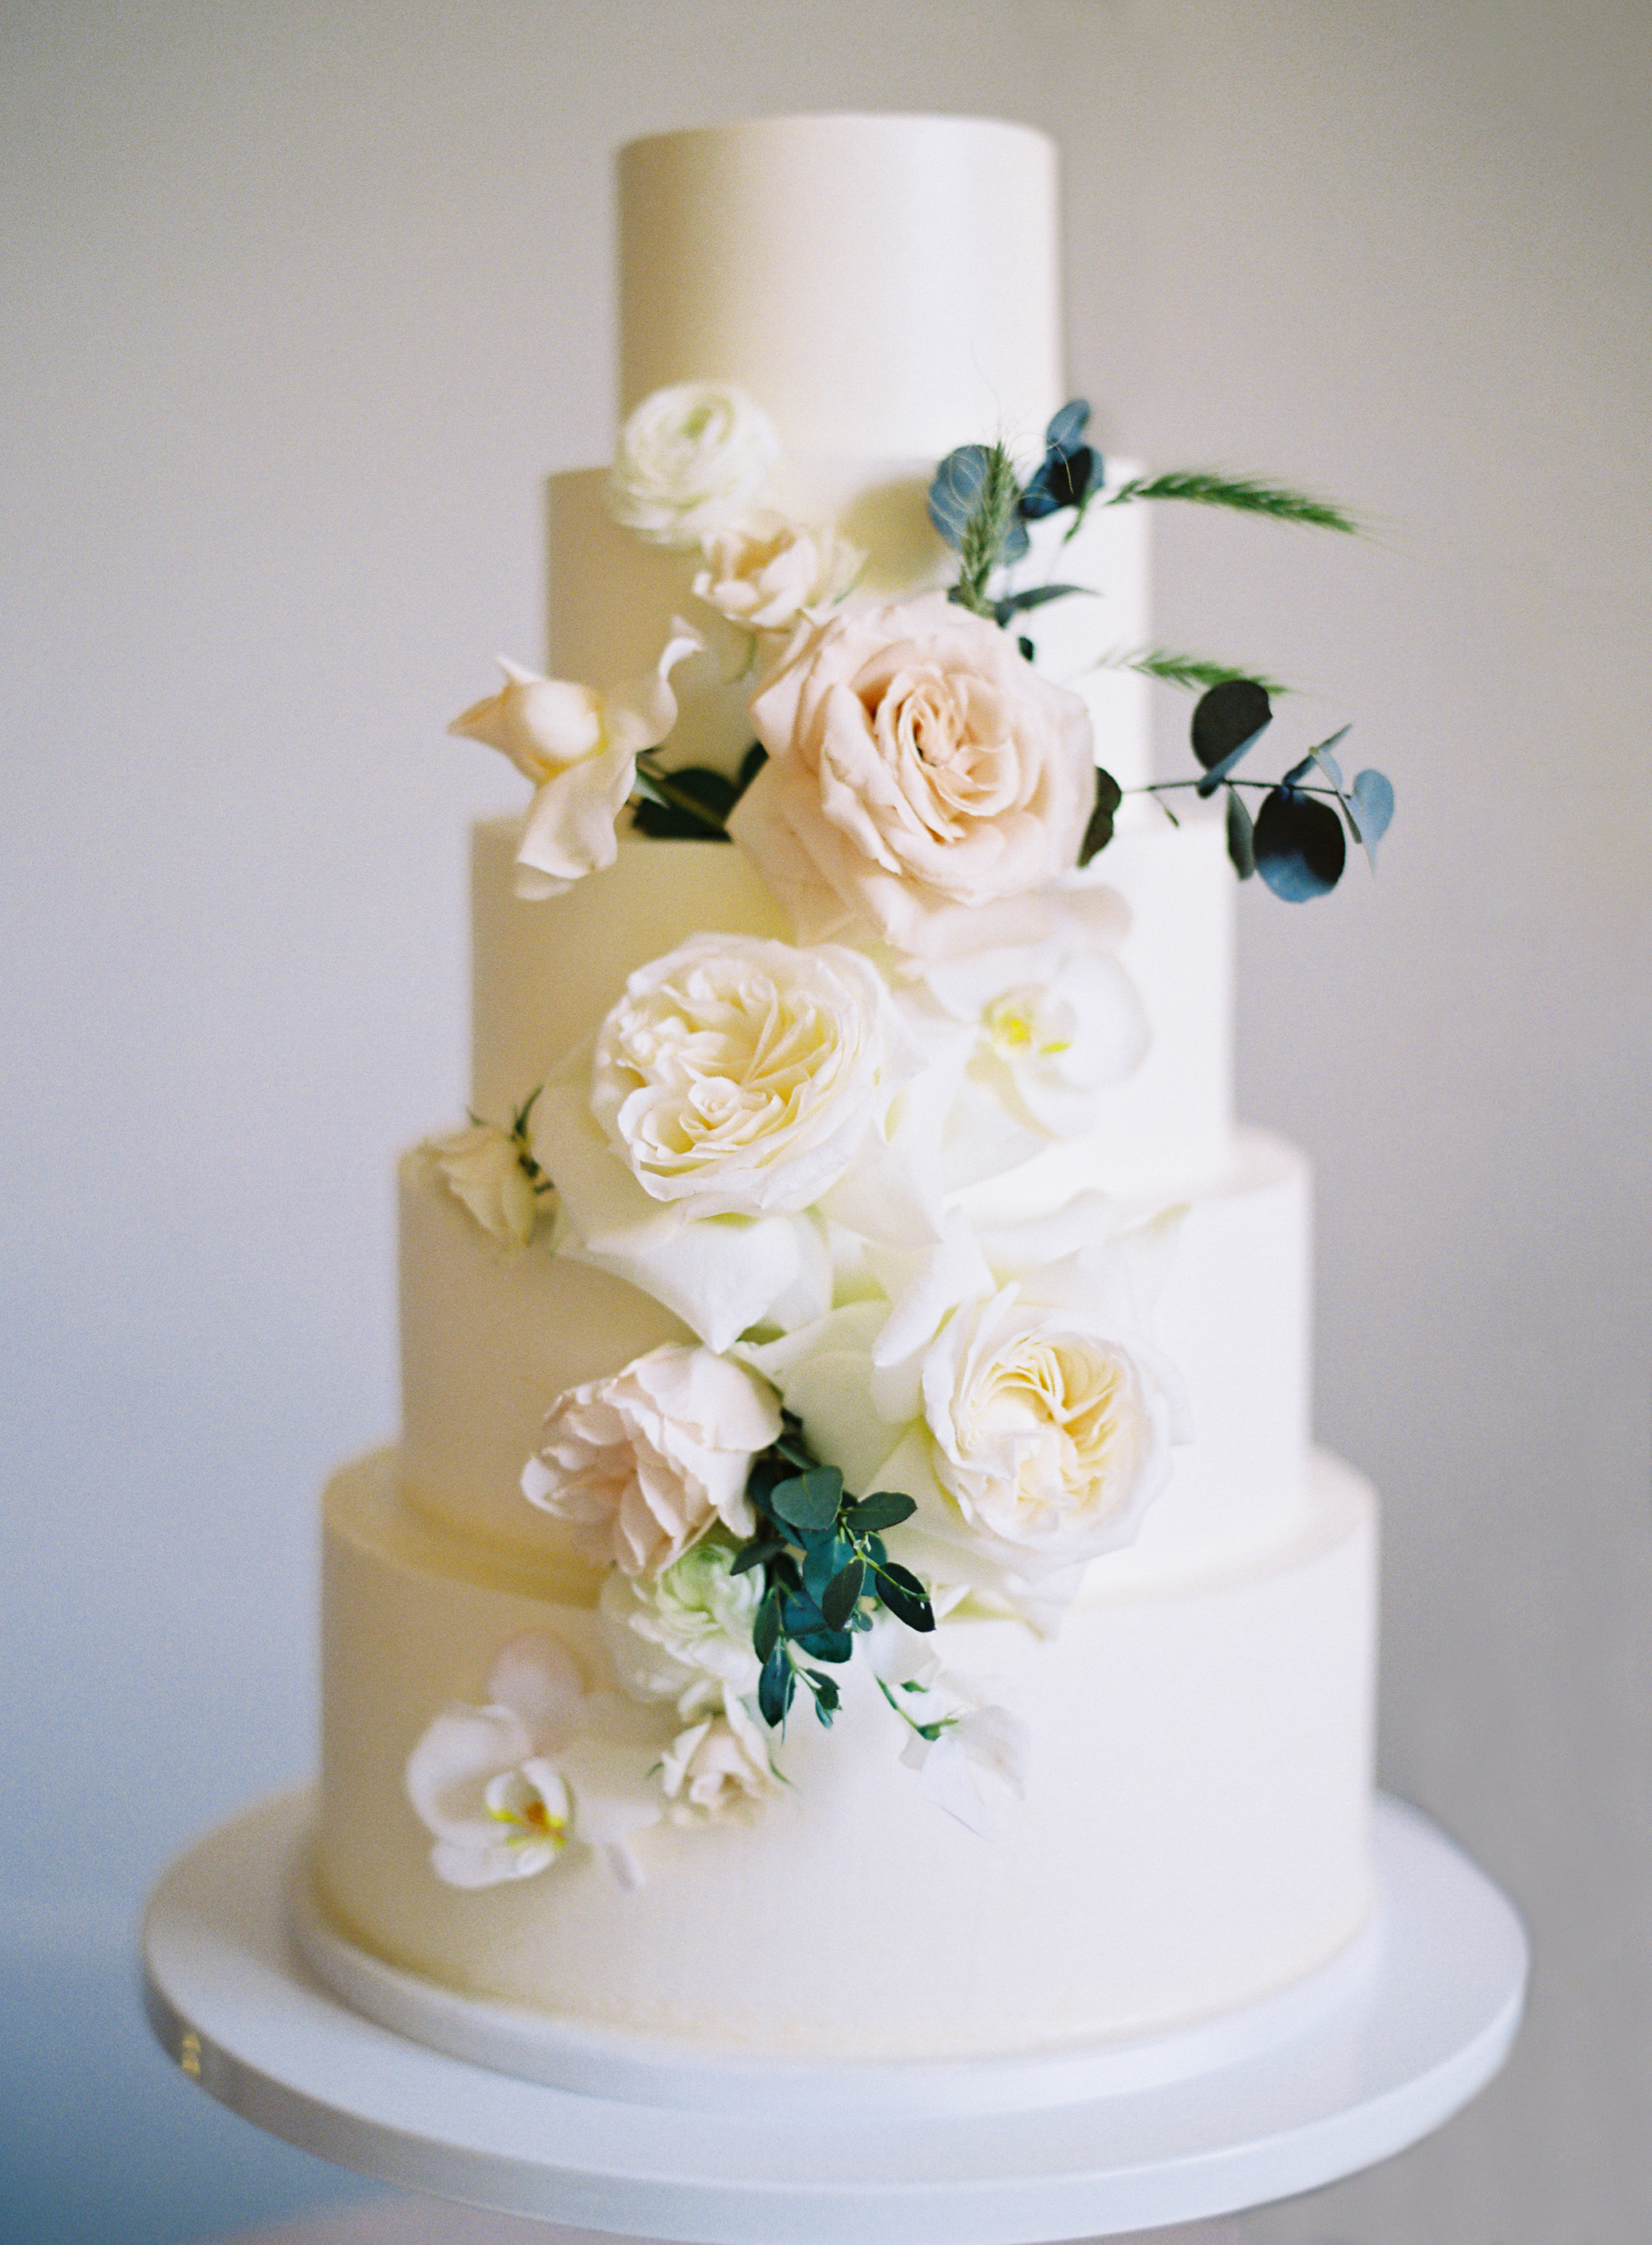 Tower Cake with fresh florals